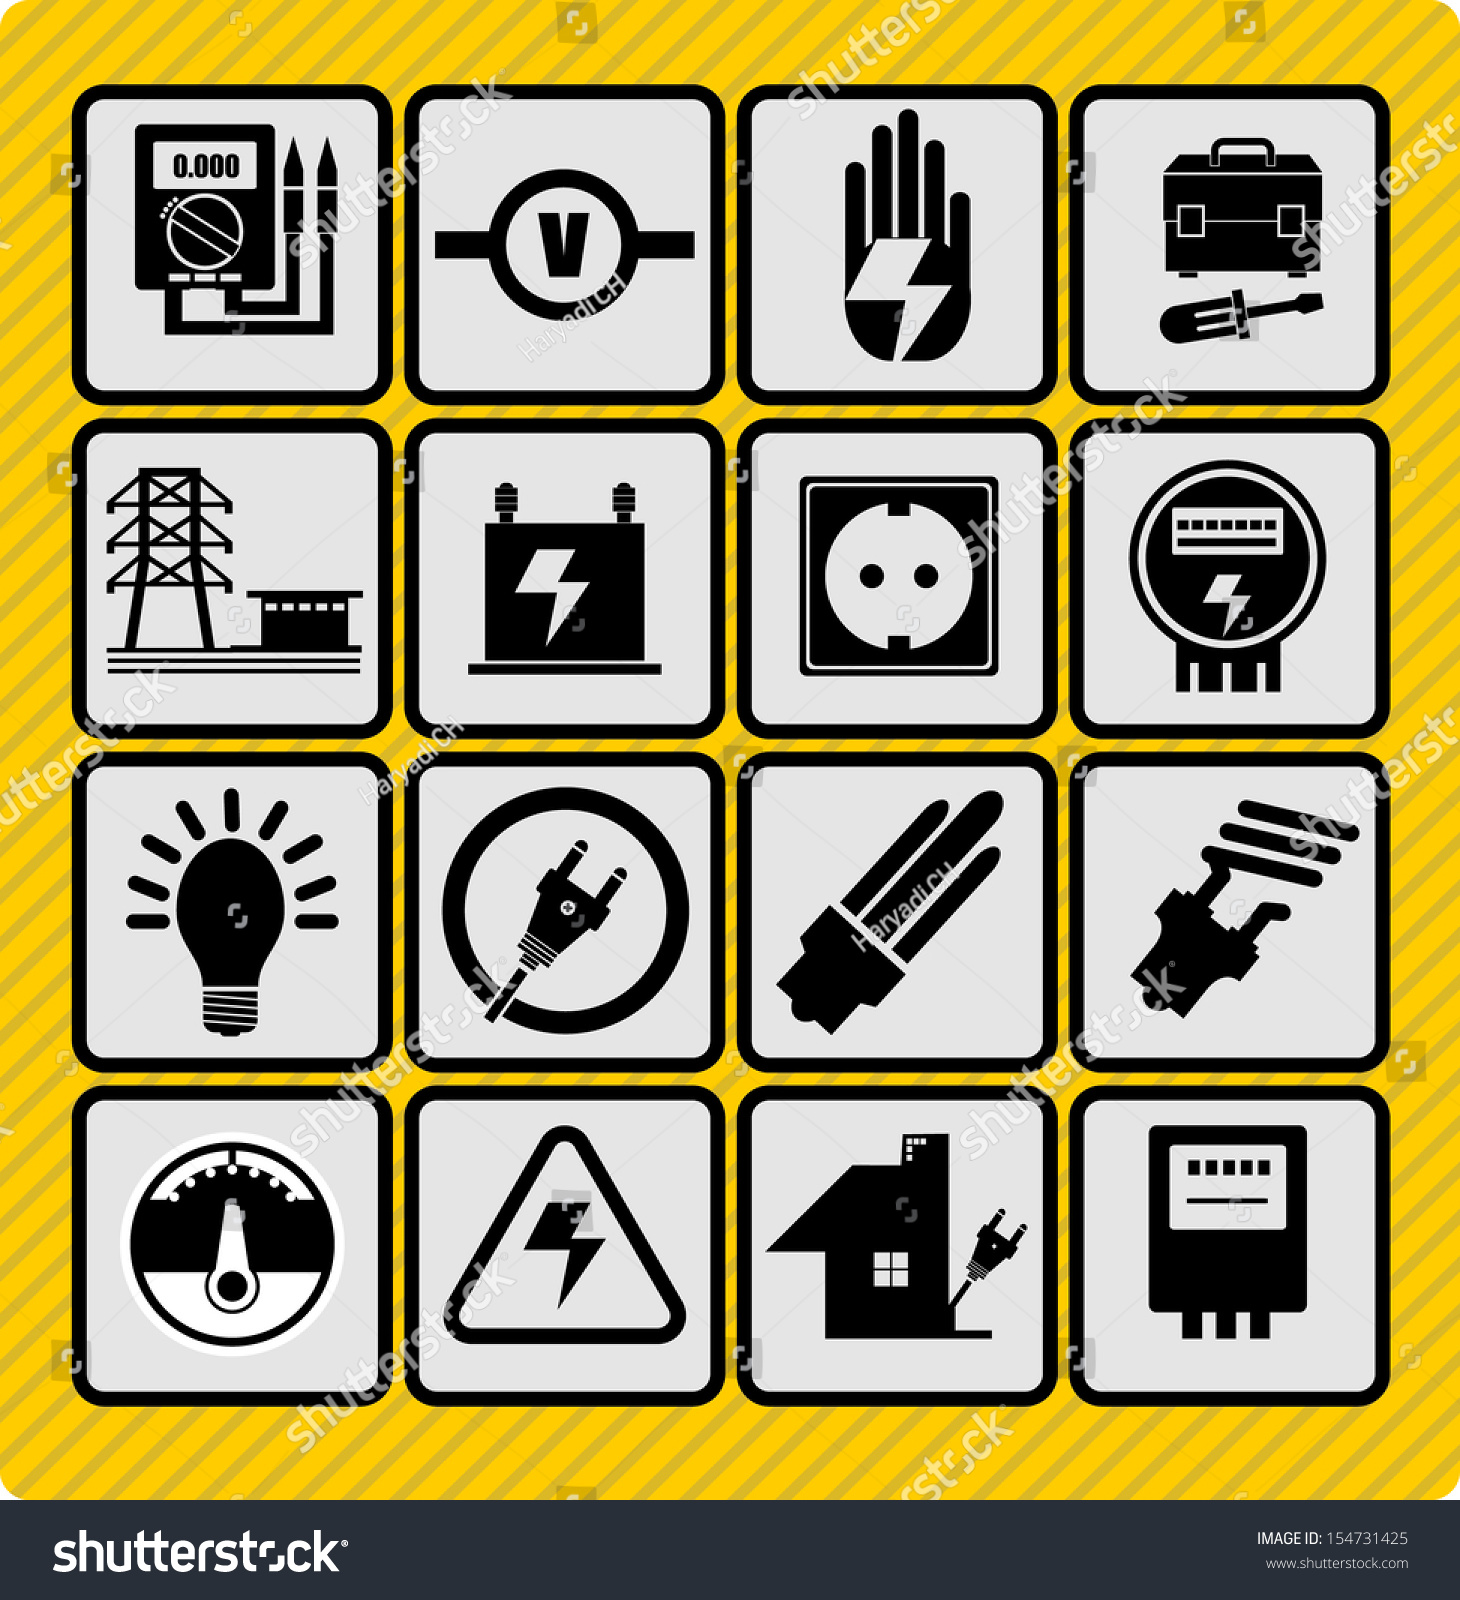 Electricity Icons Stock Vector (2018) 154731425 - Shutterstock